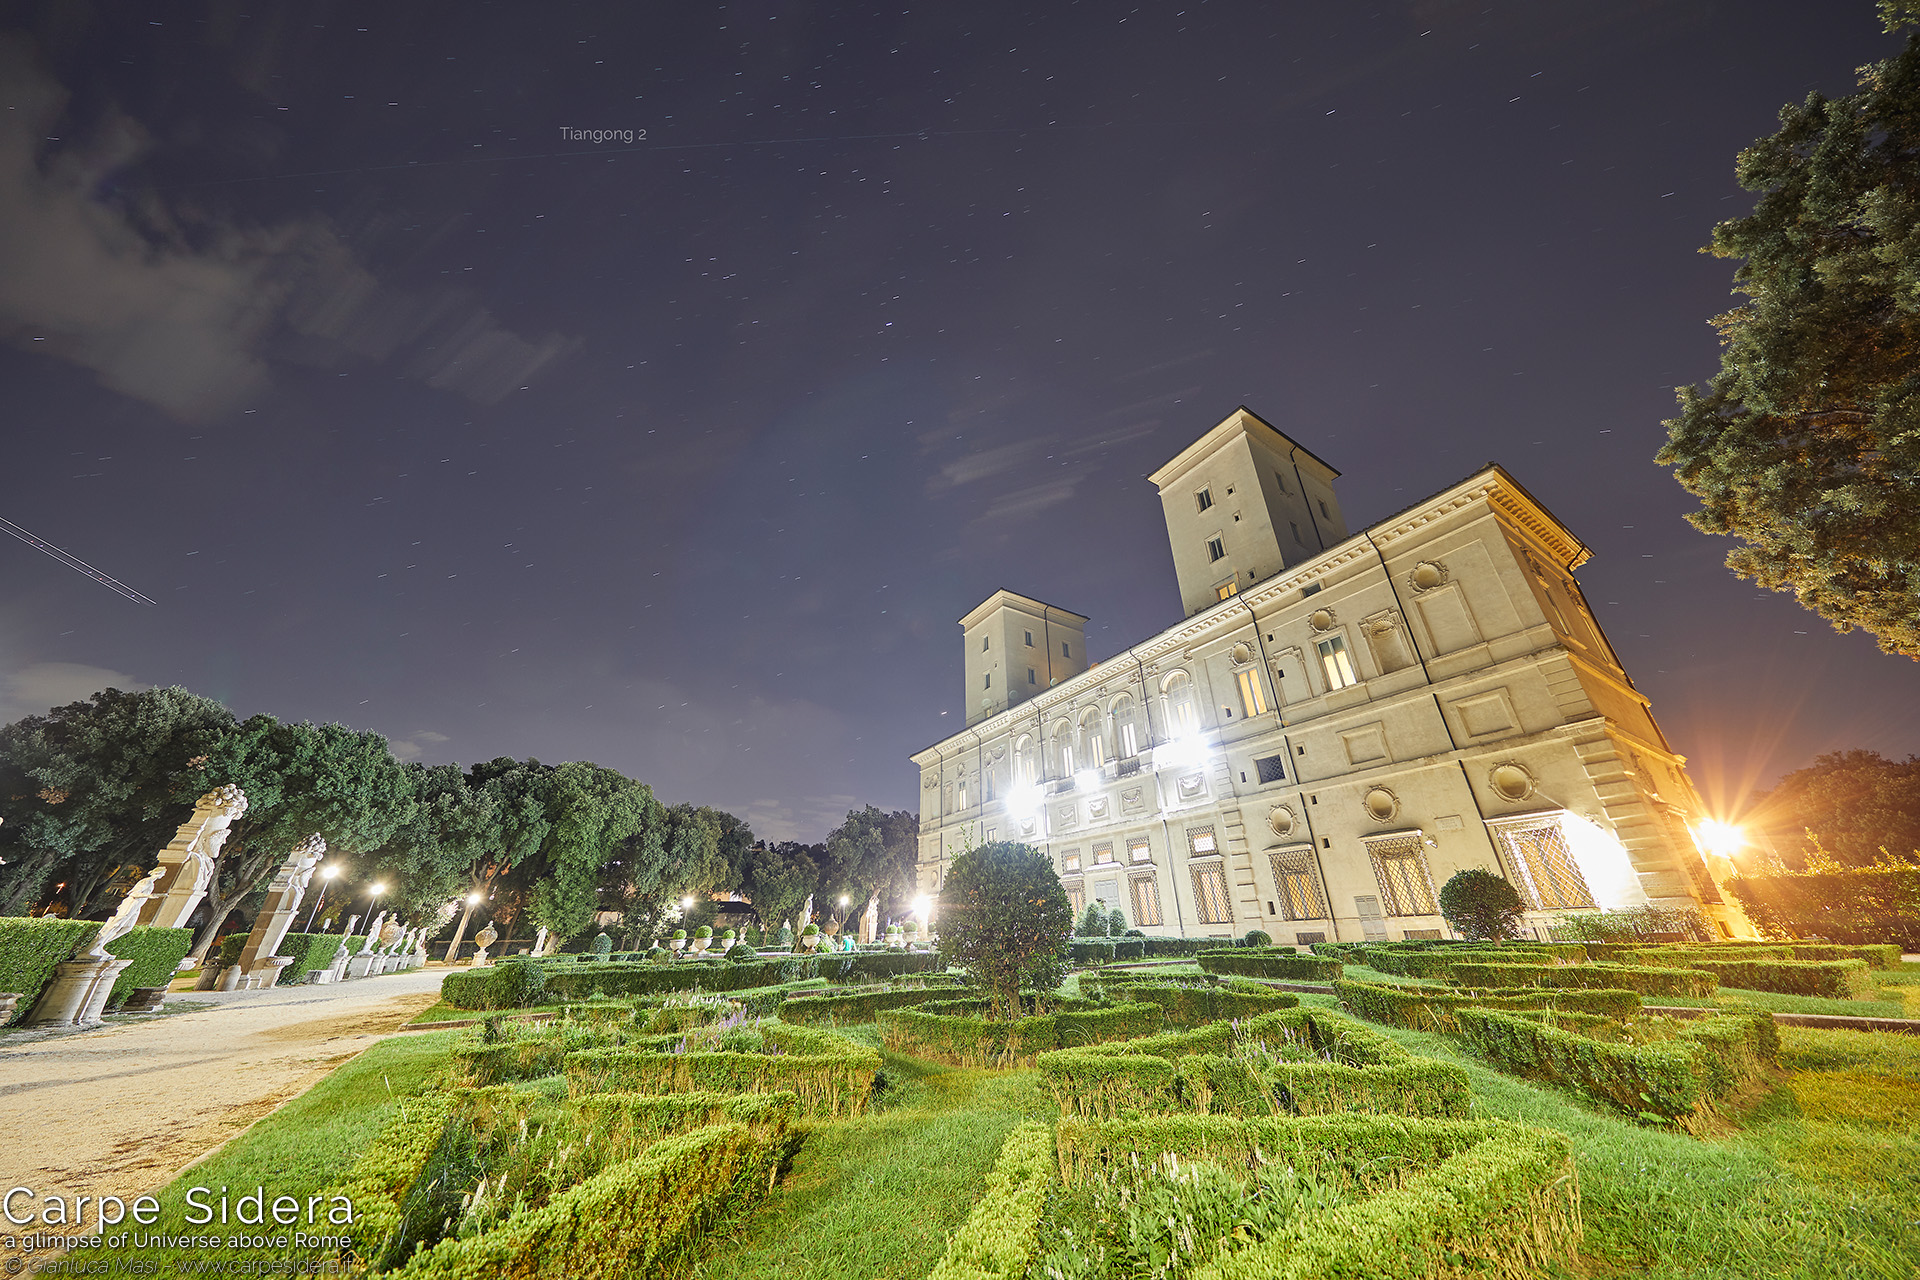 24. The Tiangong 2 Chinese space station passes above Galleria Borghese.